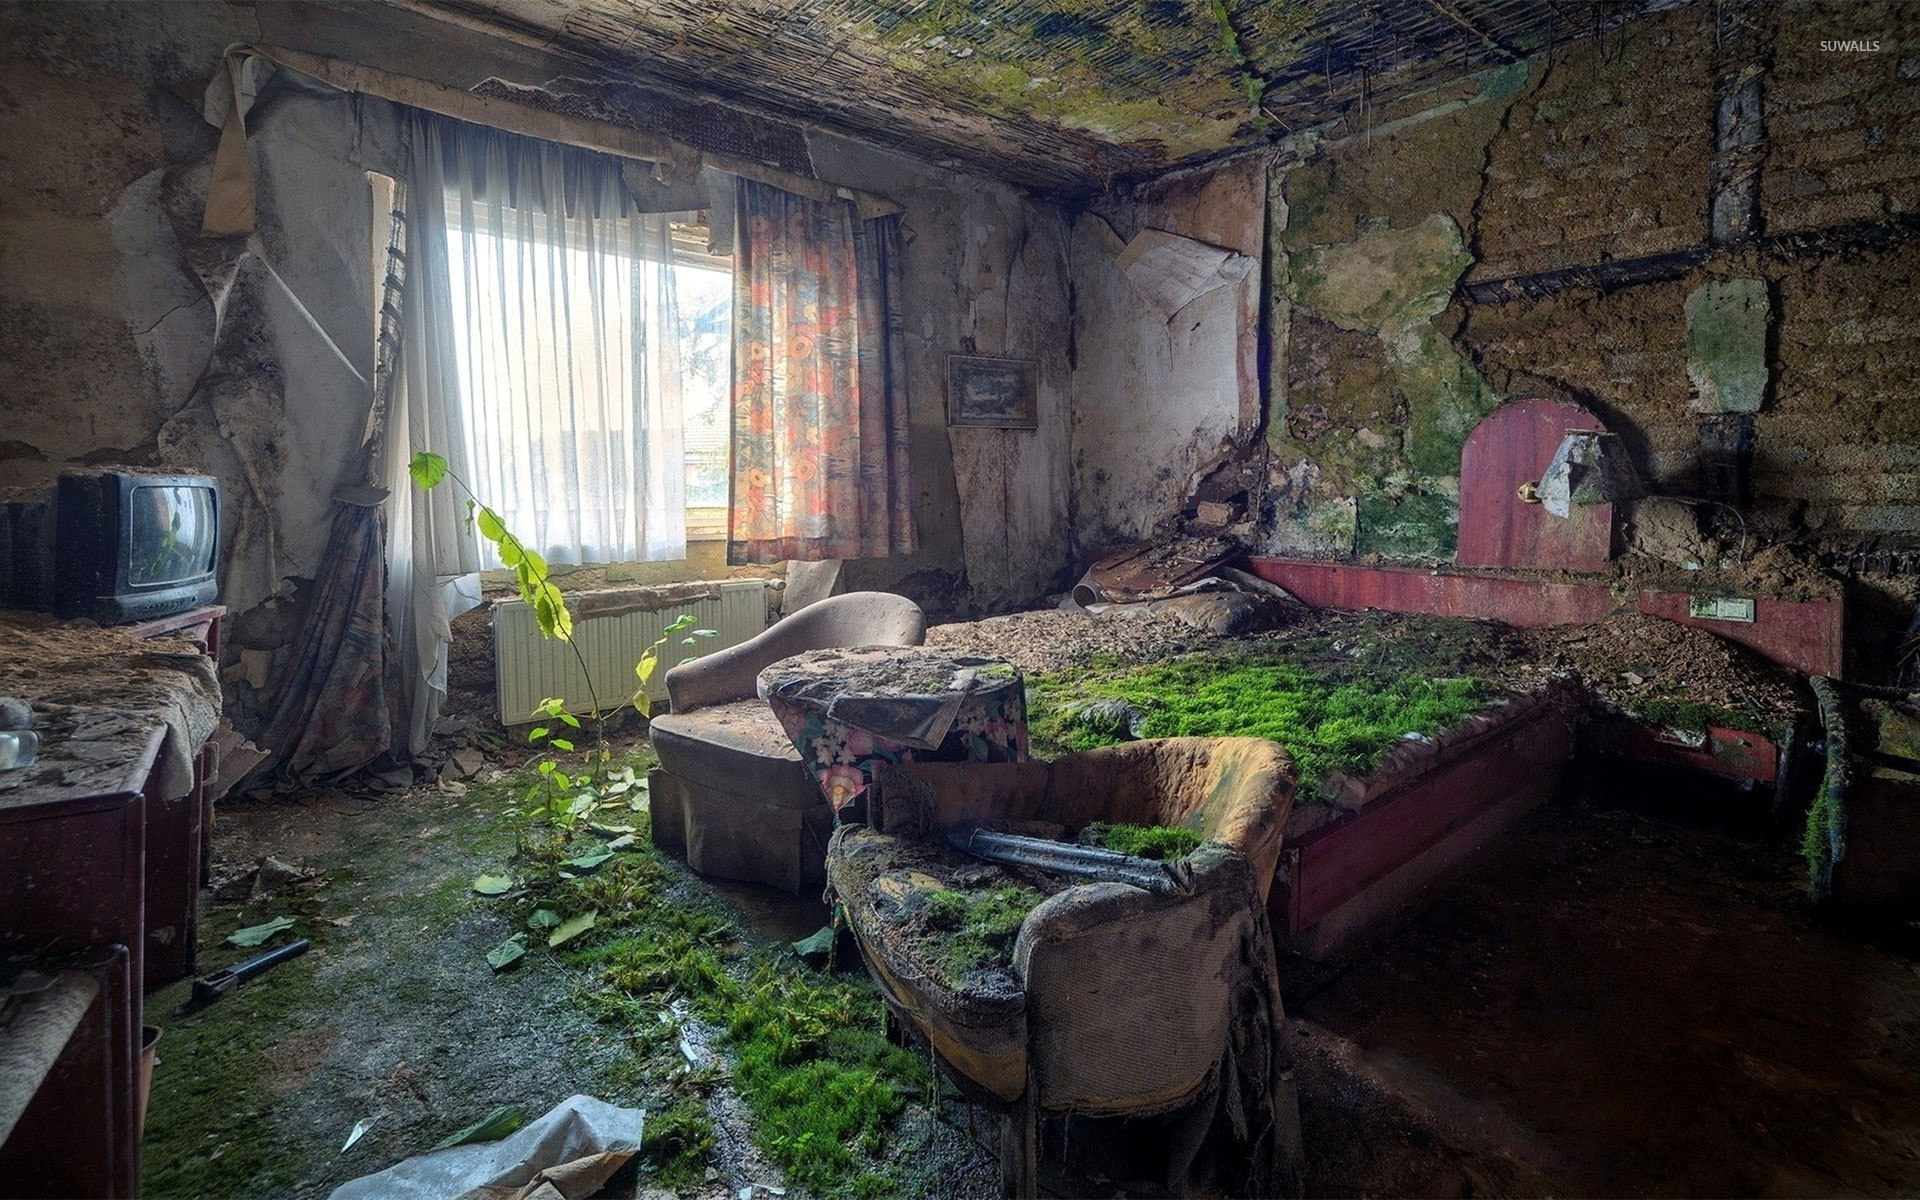 Abandoned Mossy Hotel Room Wallpaper Photography